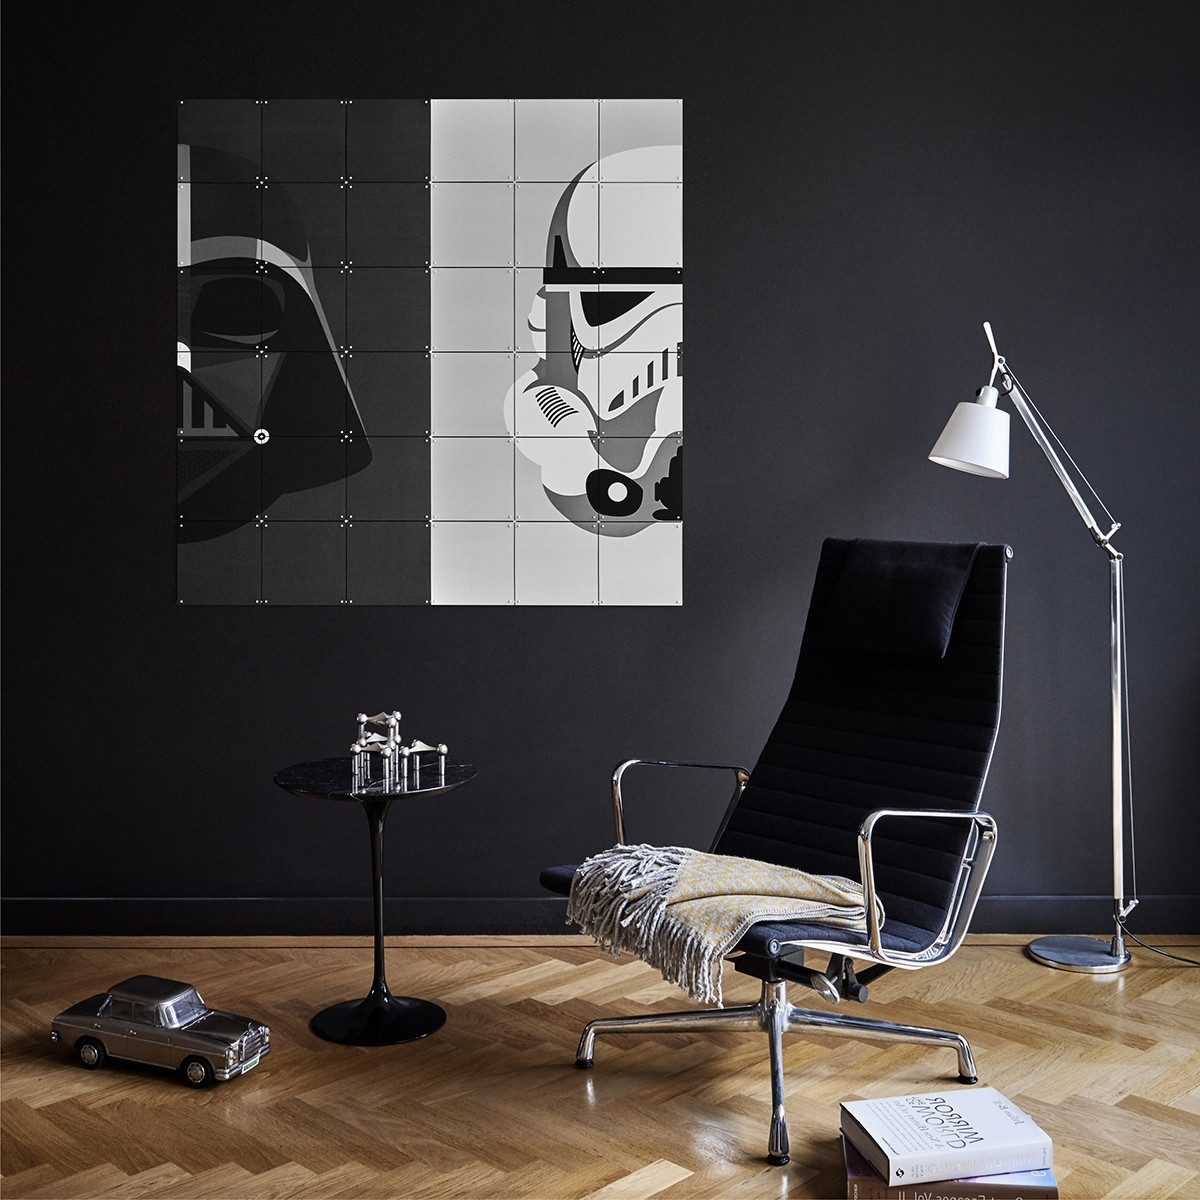 Star Wars Wall Art With Best And Newest Star Wars Stormtrooper/darth Vader Wall Art Panels – Tgi Found It (View 14 of 15)